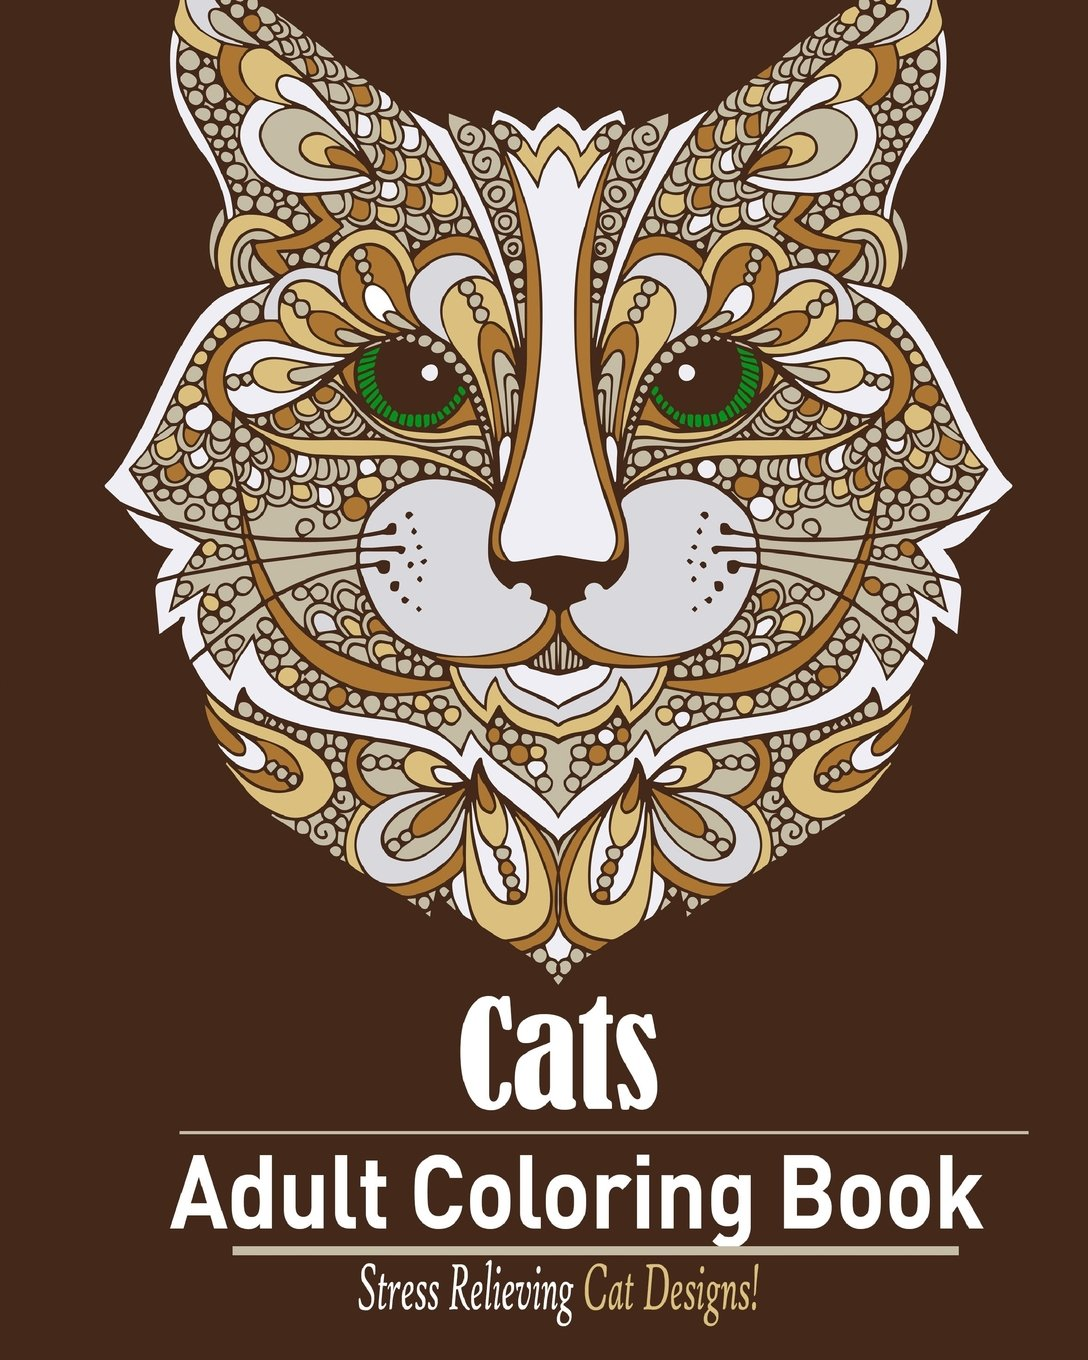 Stress relieving cats coloring - Amazon Com Cats Adult Coloring Book Stress Relieving Cat Designs 9781522893202 Coloring Book For Adult Books